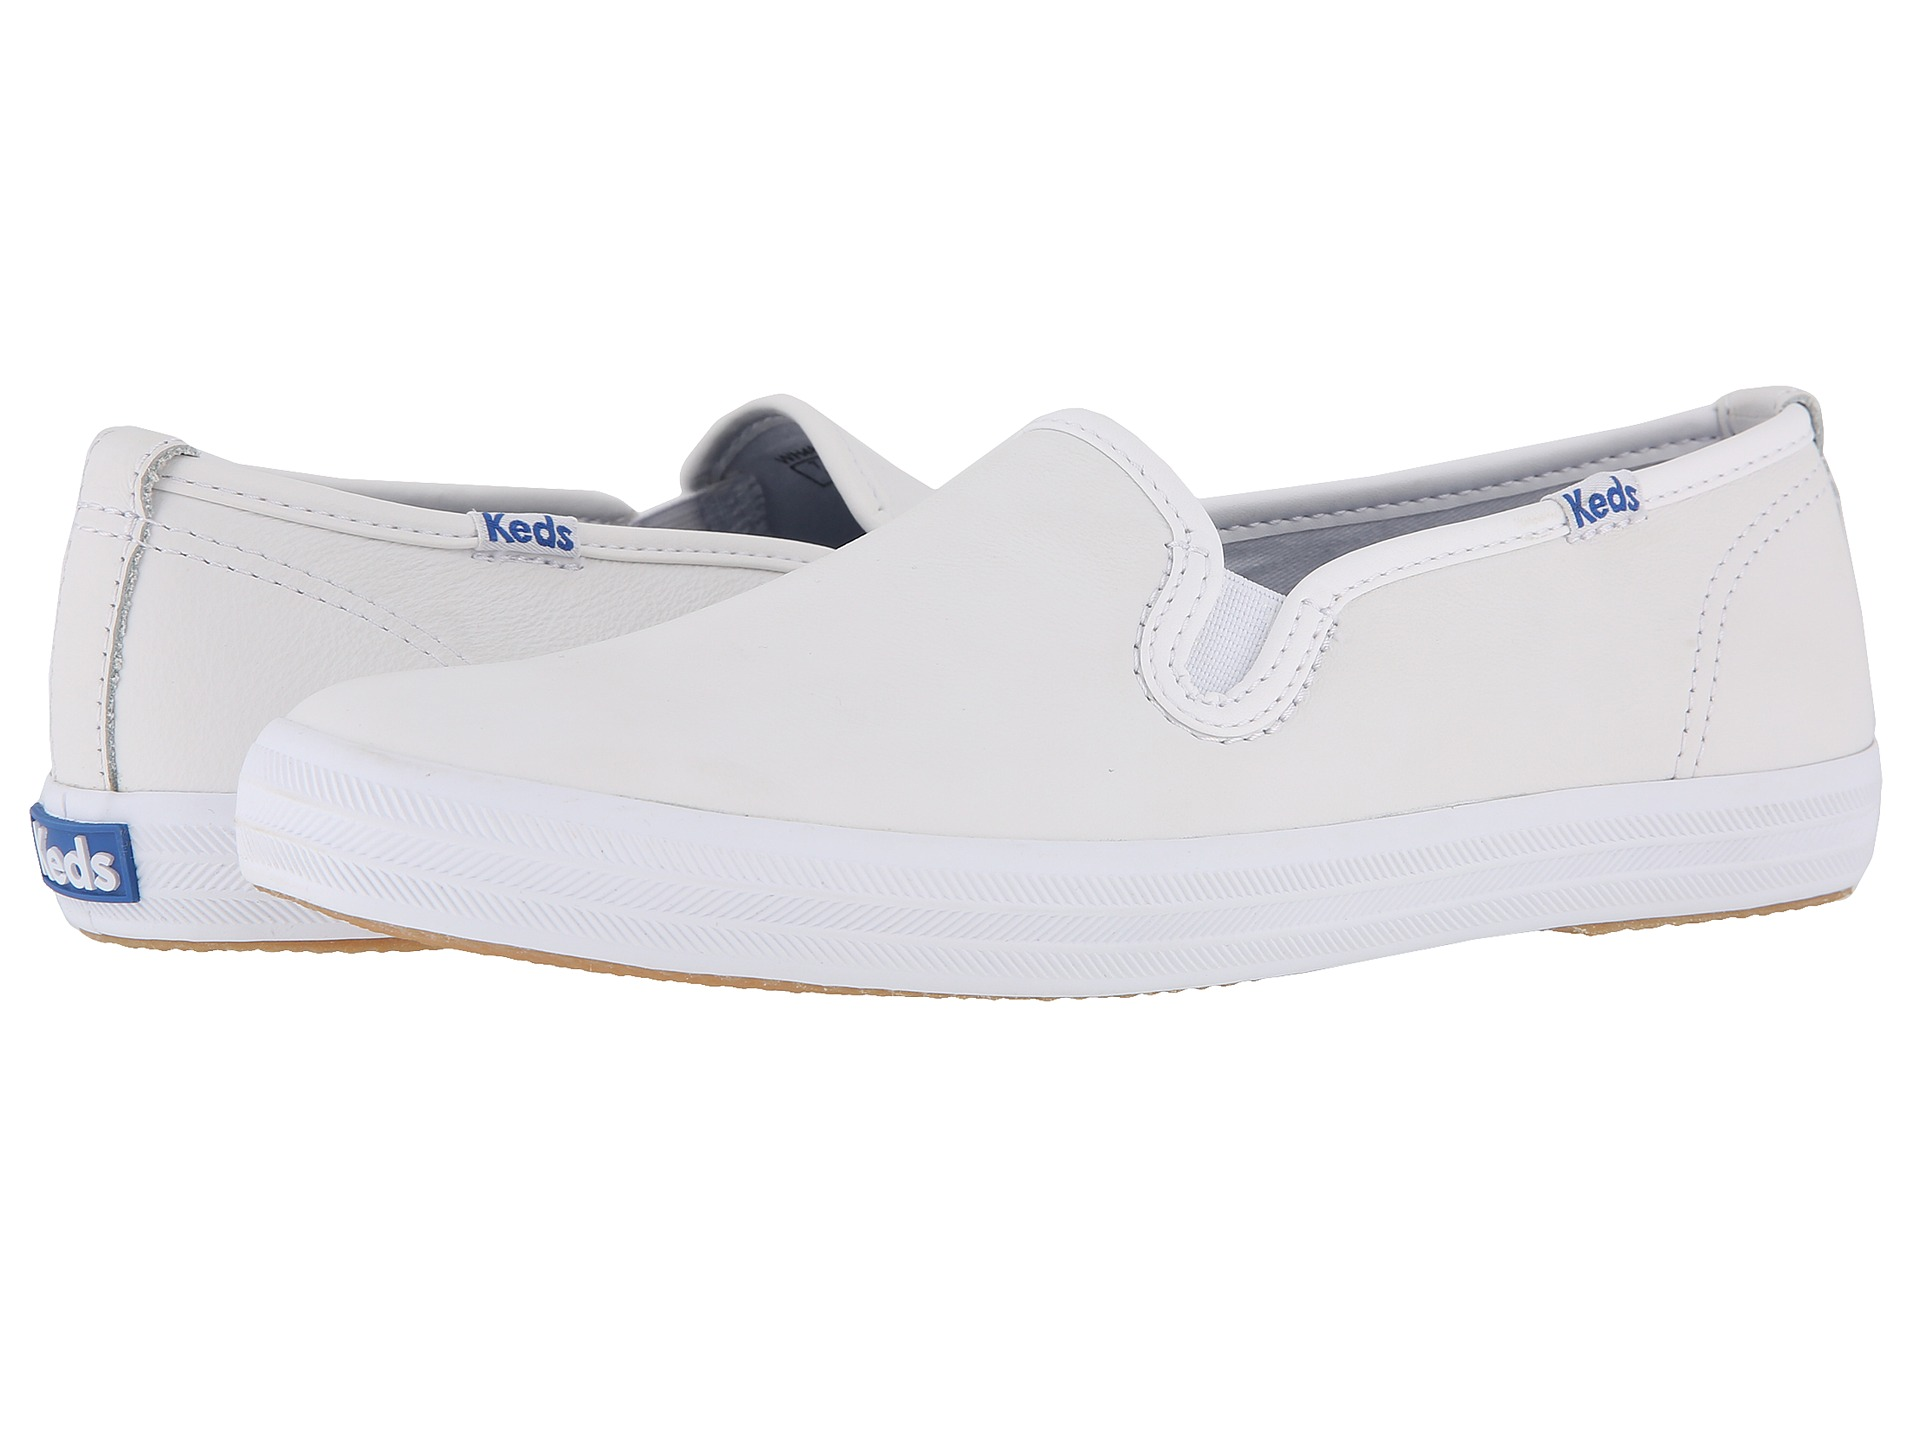 keds slip on tennis shoes